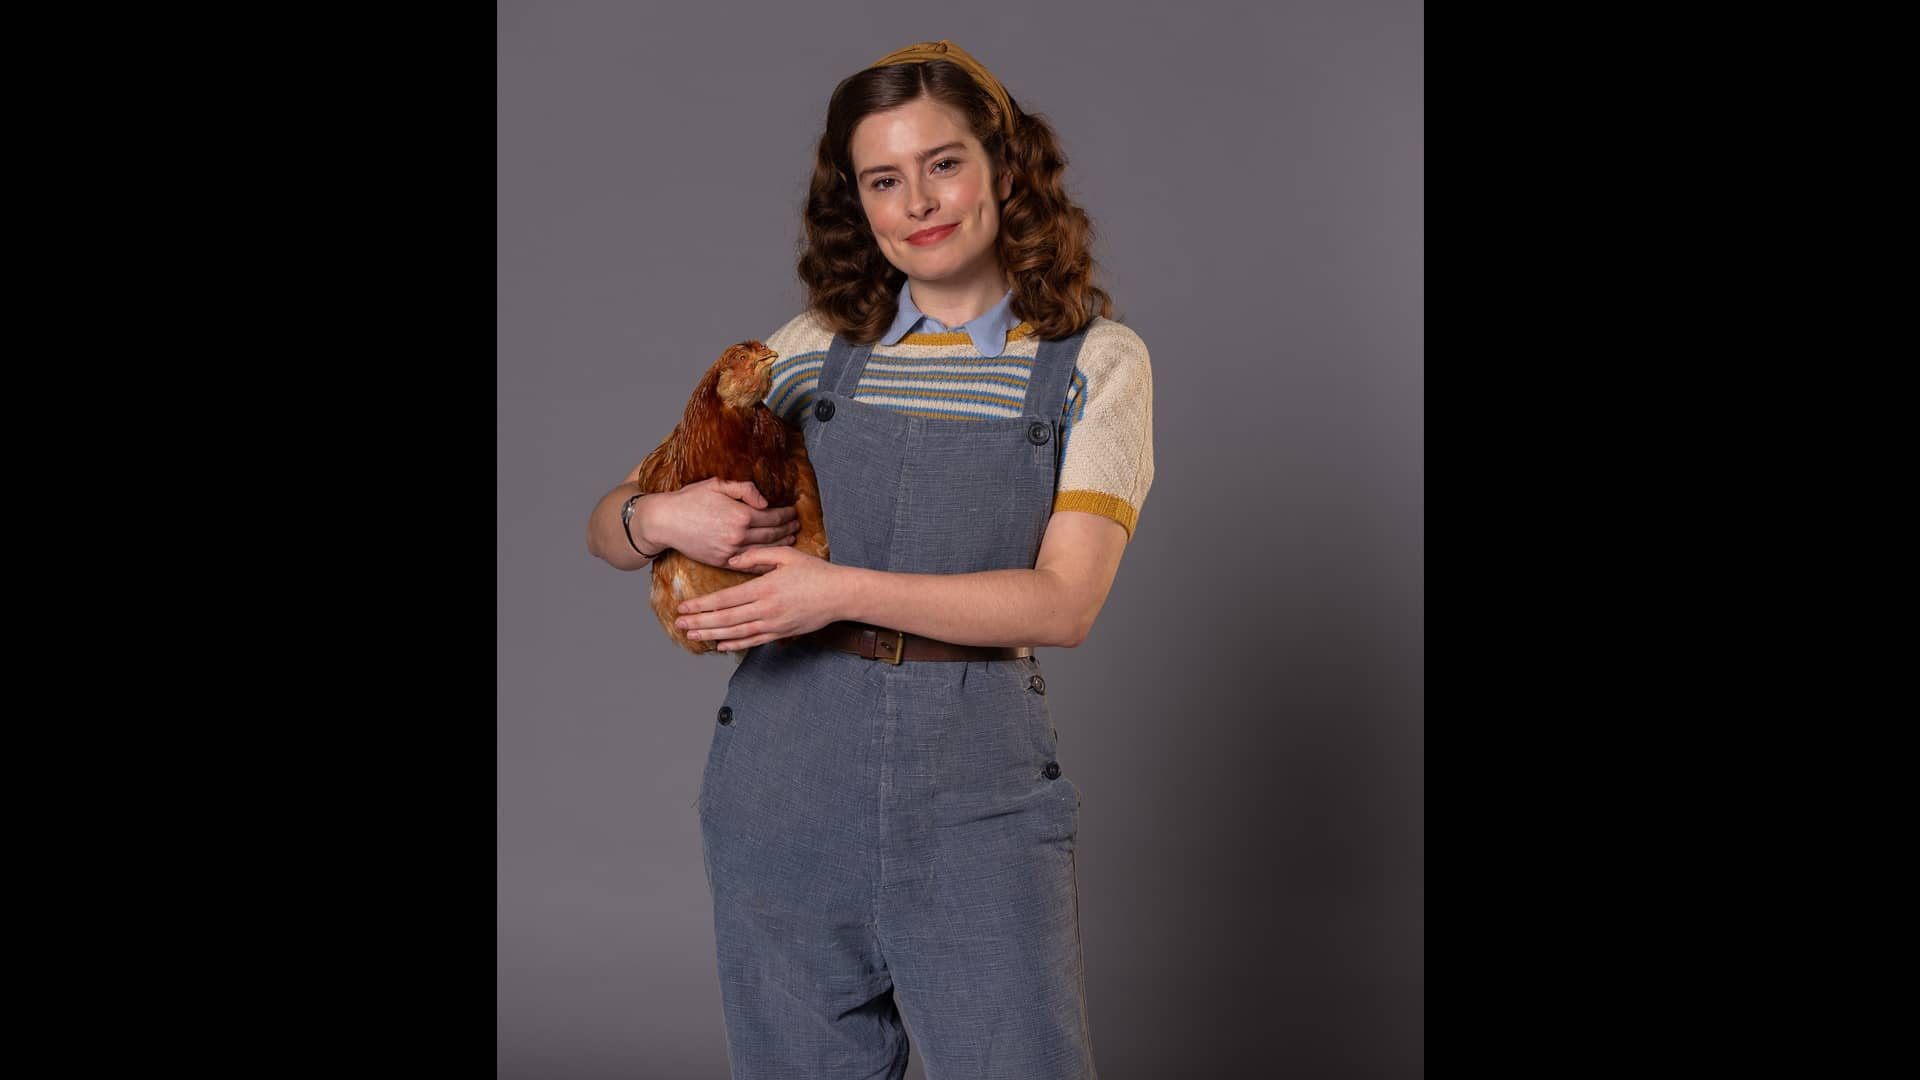 Rachel Shenton in All Creatures Great and Small on MASTERPIECE on PBS